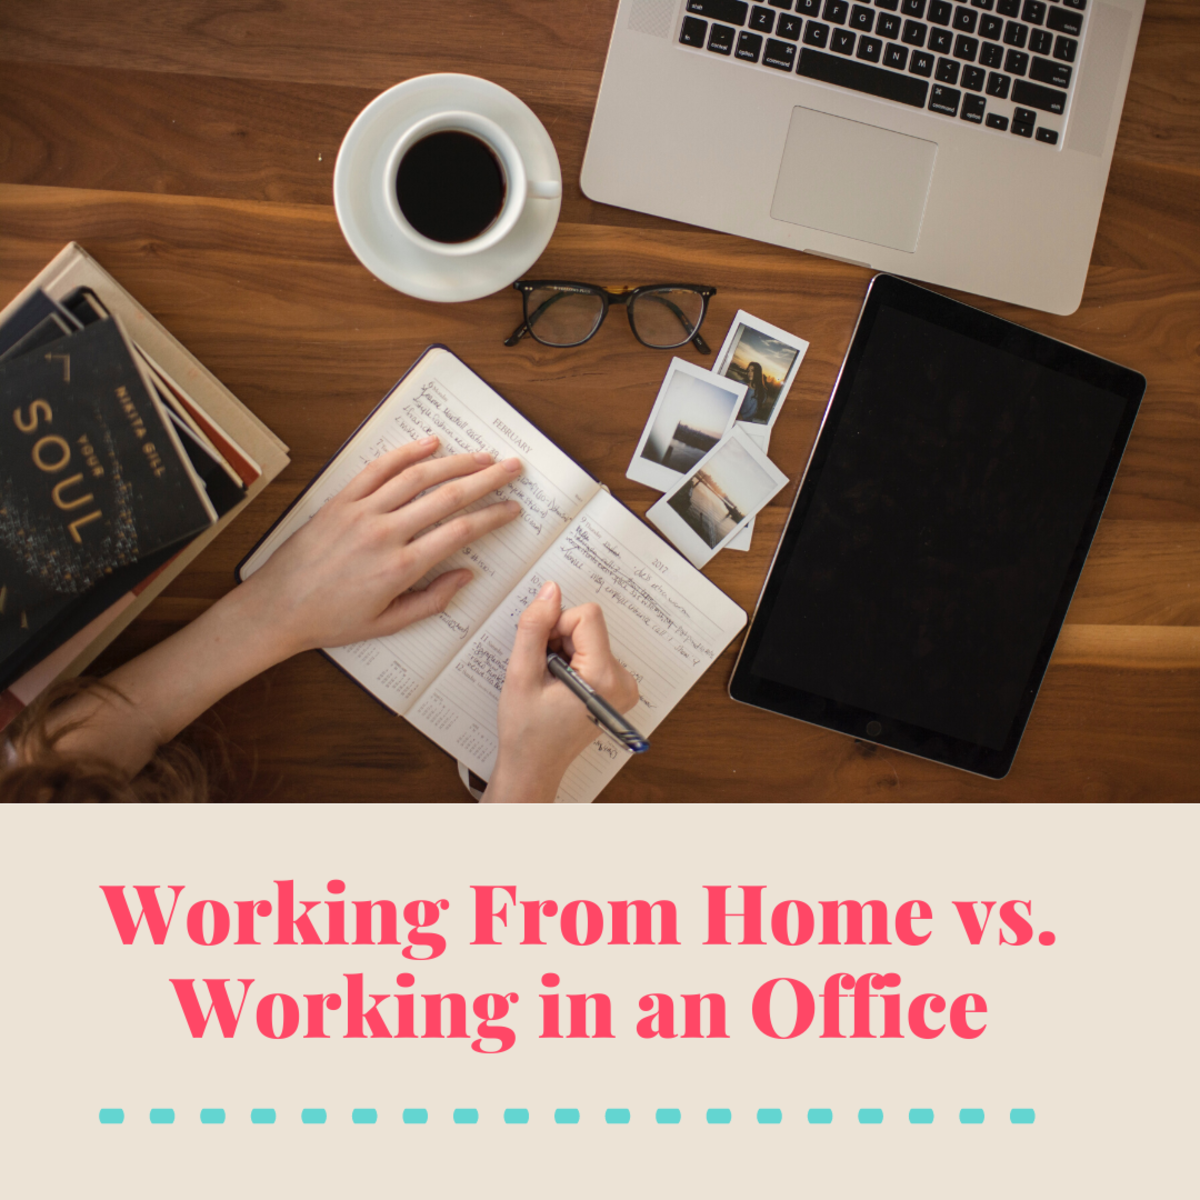 Working From Home vs. Working in an Office